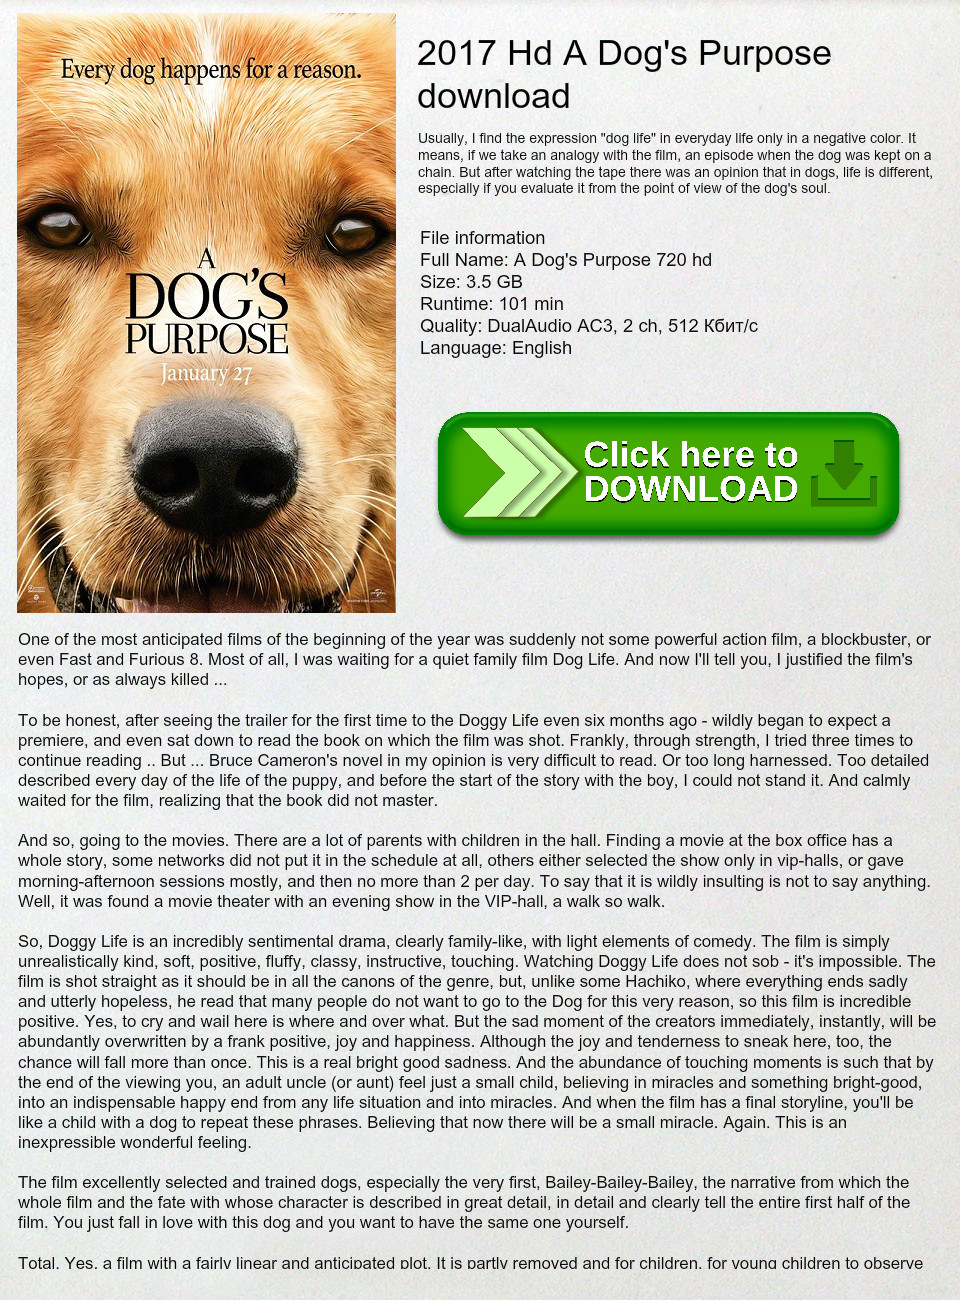 2017 Hd A Dog's Purpose download